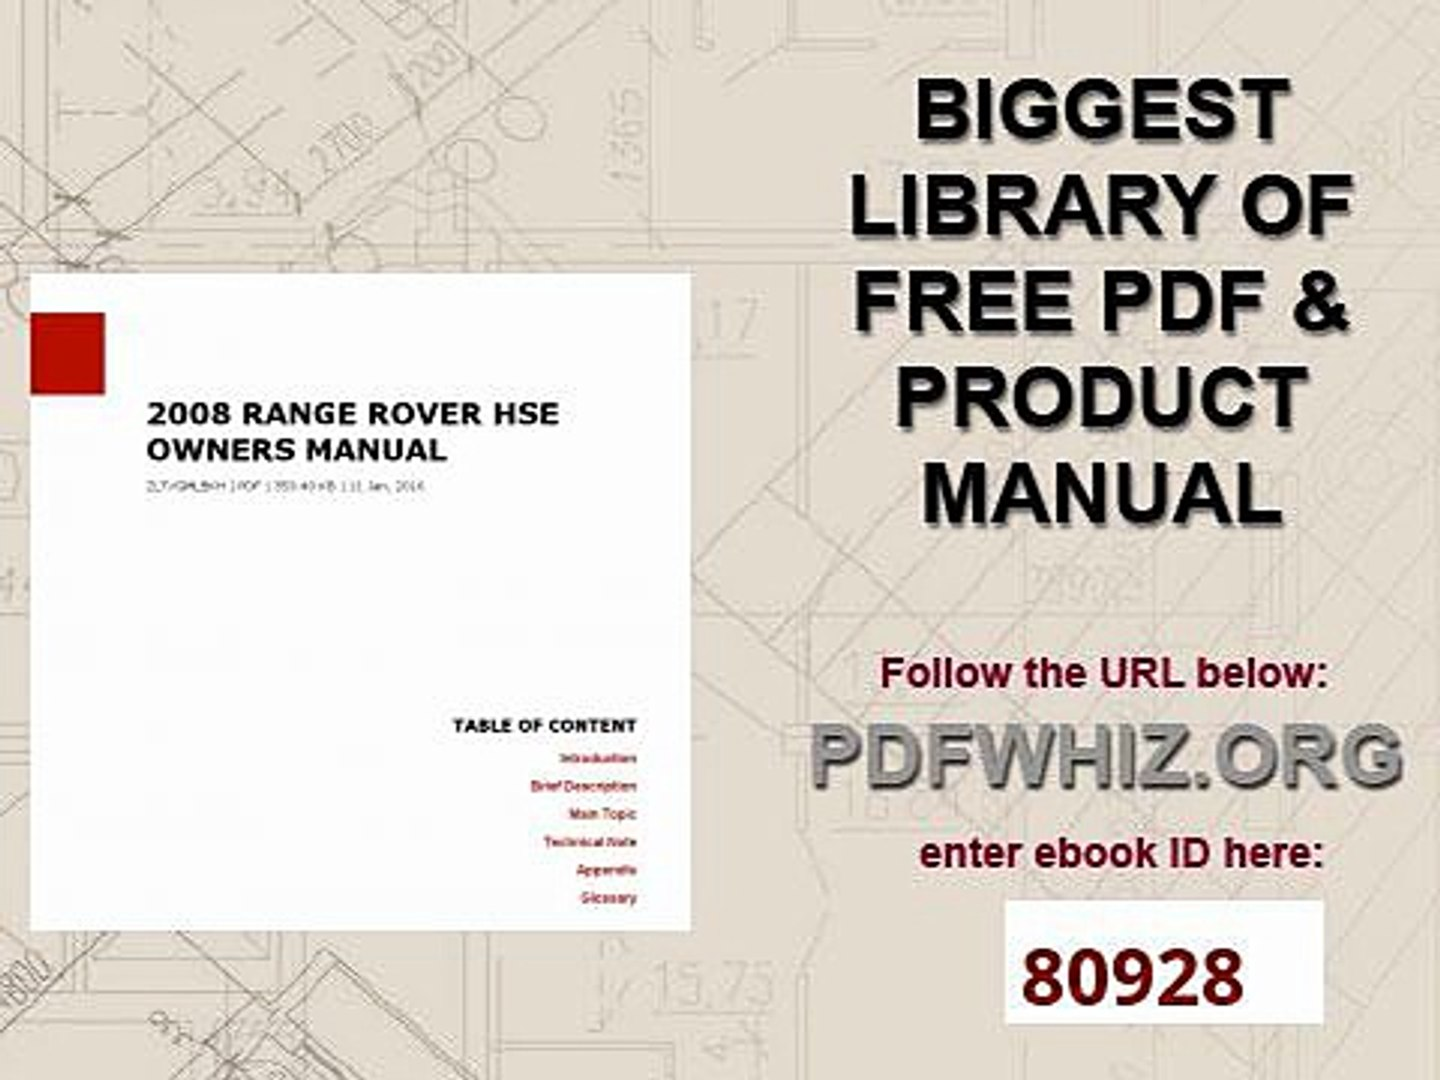 2008 RANGE ROVER HSE OWNERS MANUAL